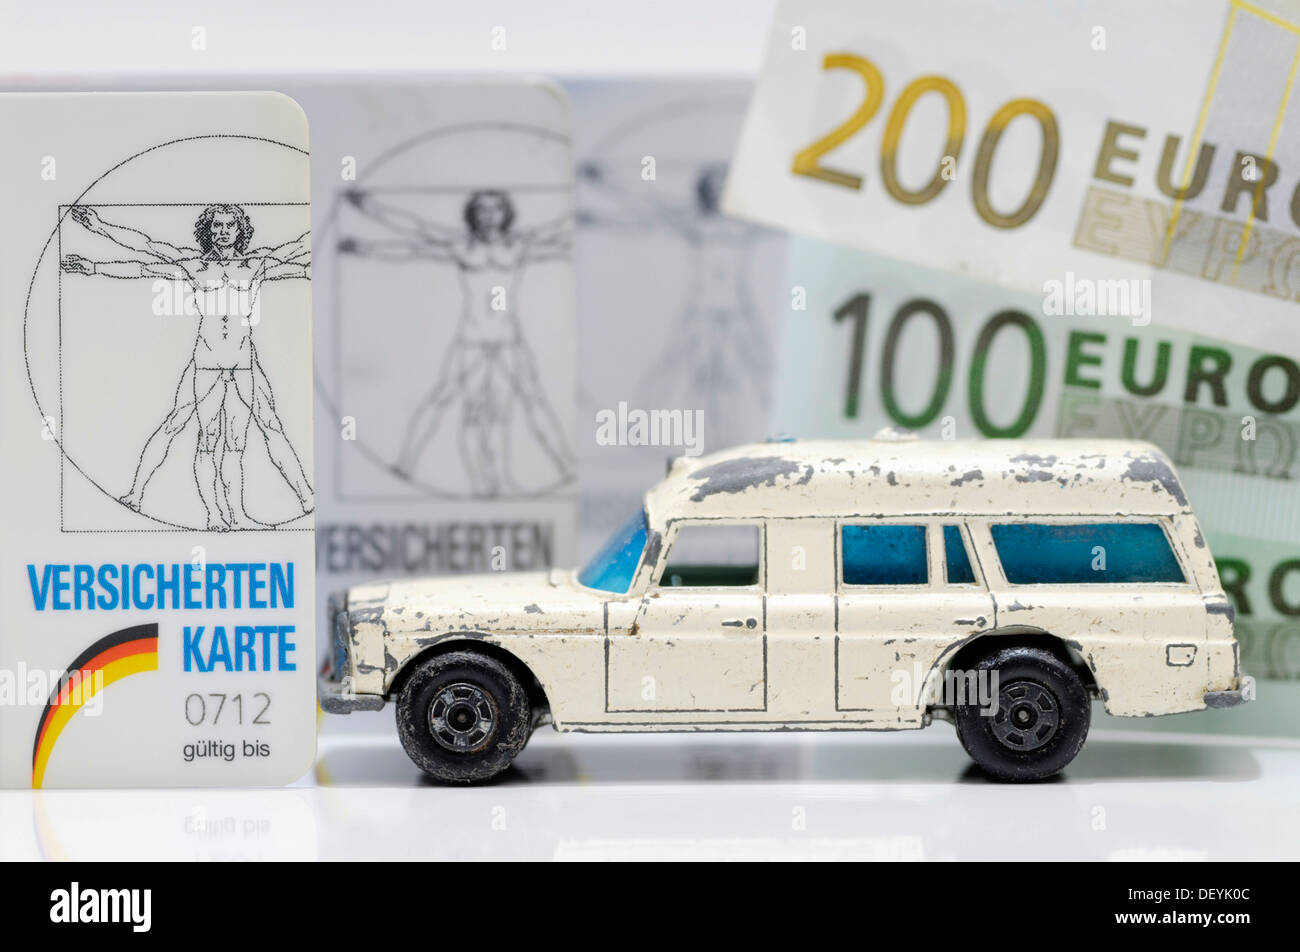 Health insurance cards and miniature ambulance, symbolic image for financial difficulties of health insurances - Stock Image